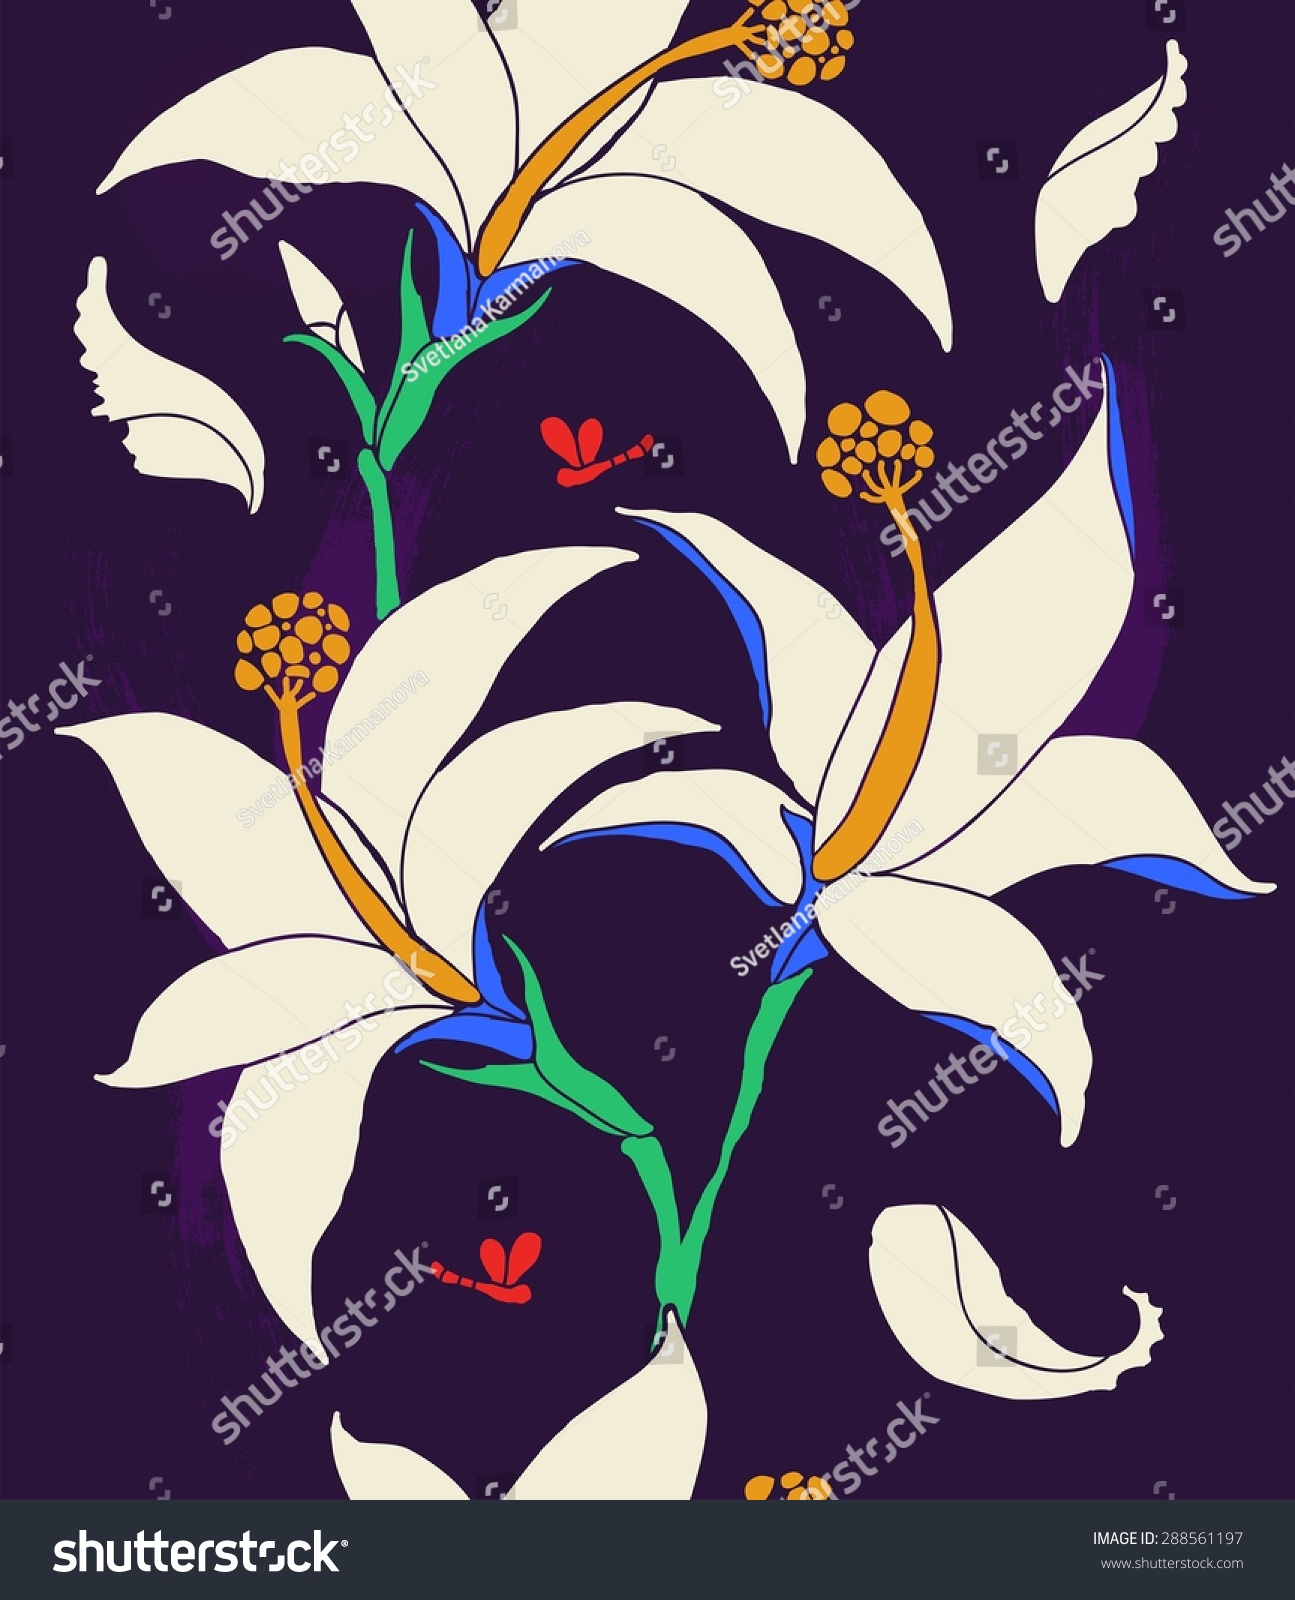 Vertical border lilies white flowers on stock vector royalty free the vertical border of lilies white flowers on a dark background izmirmasajfo